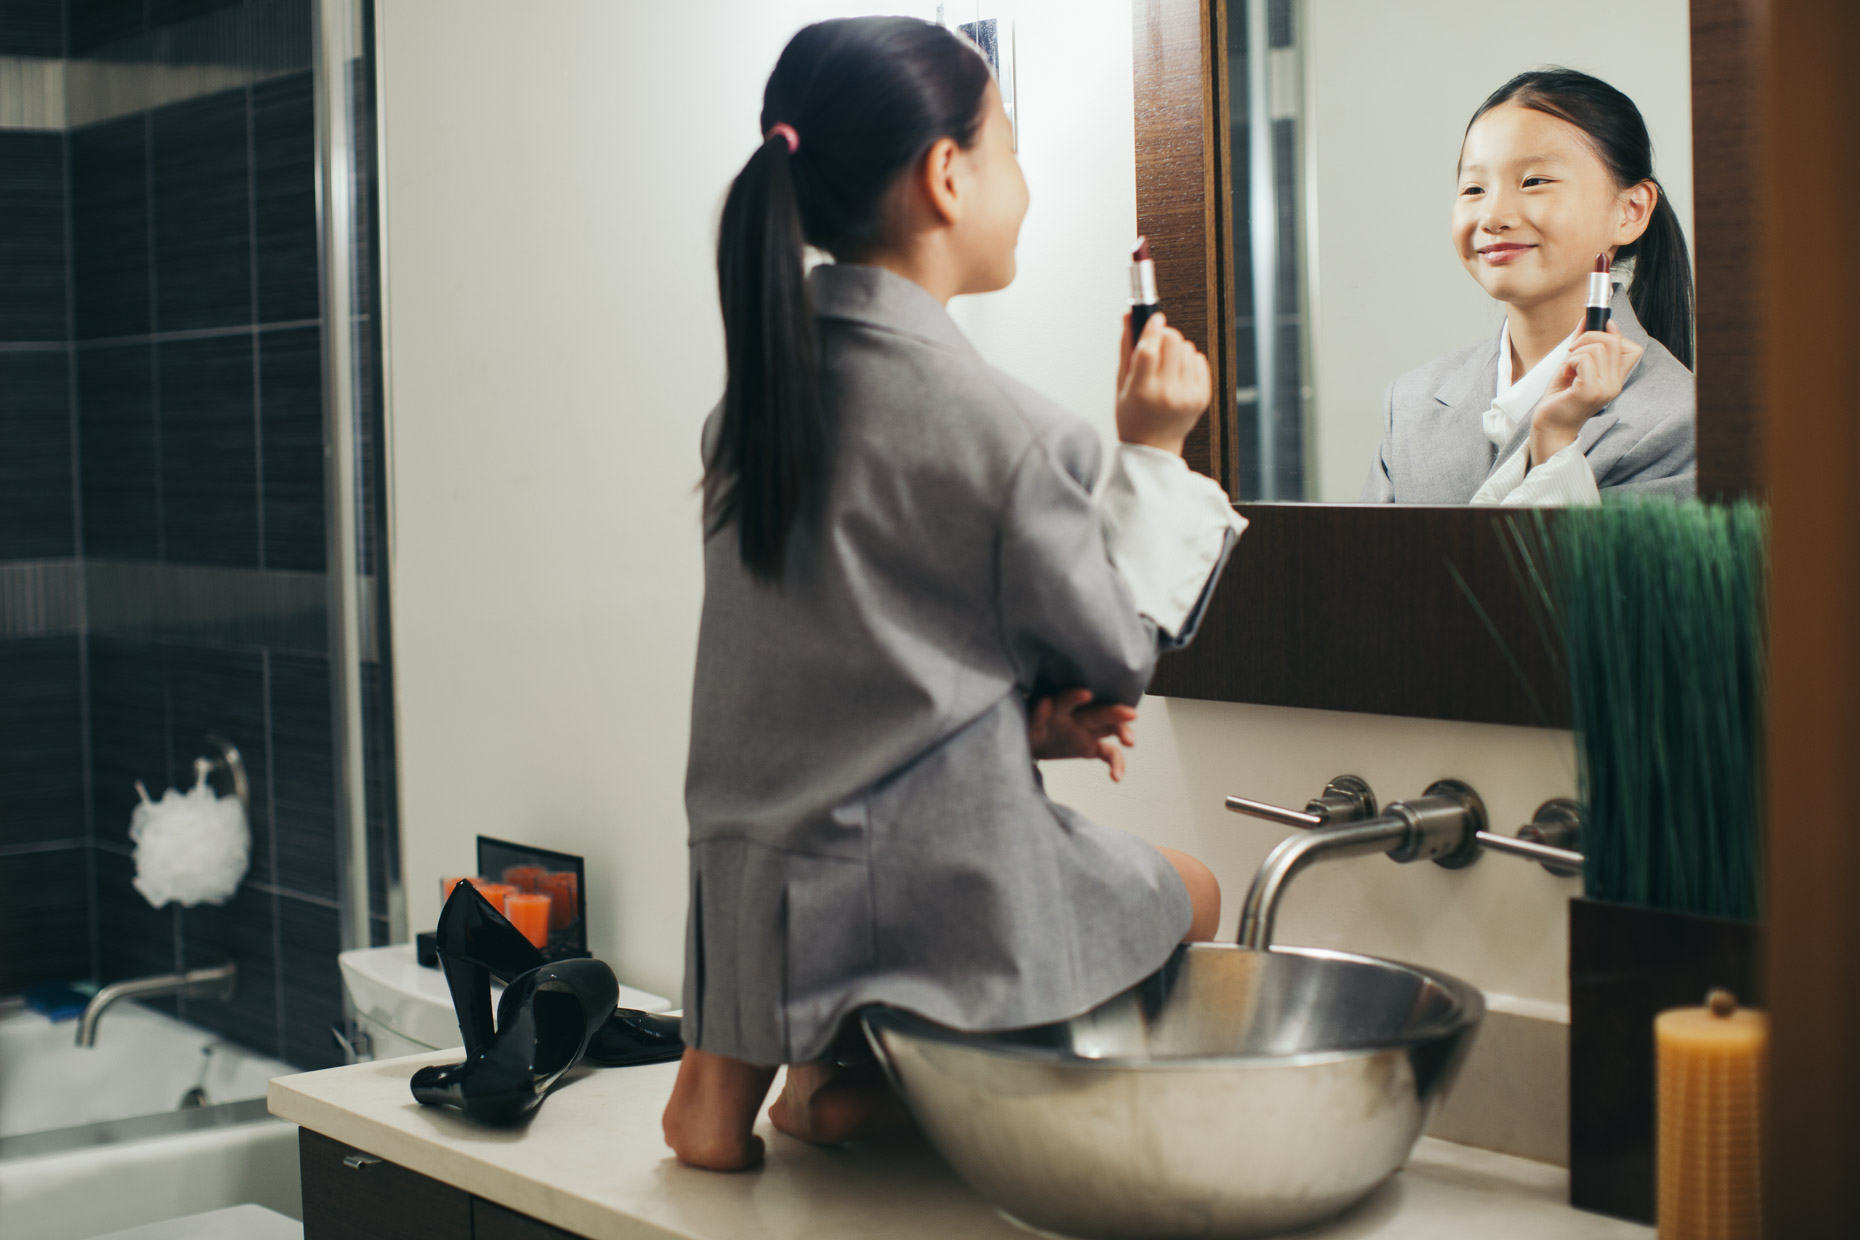 Asian girl in suit jacket on bathroom counter trying on lipstick in front of mirror